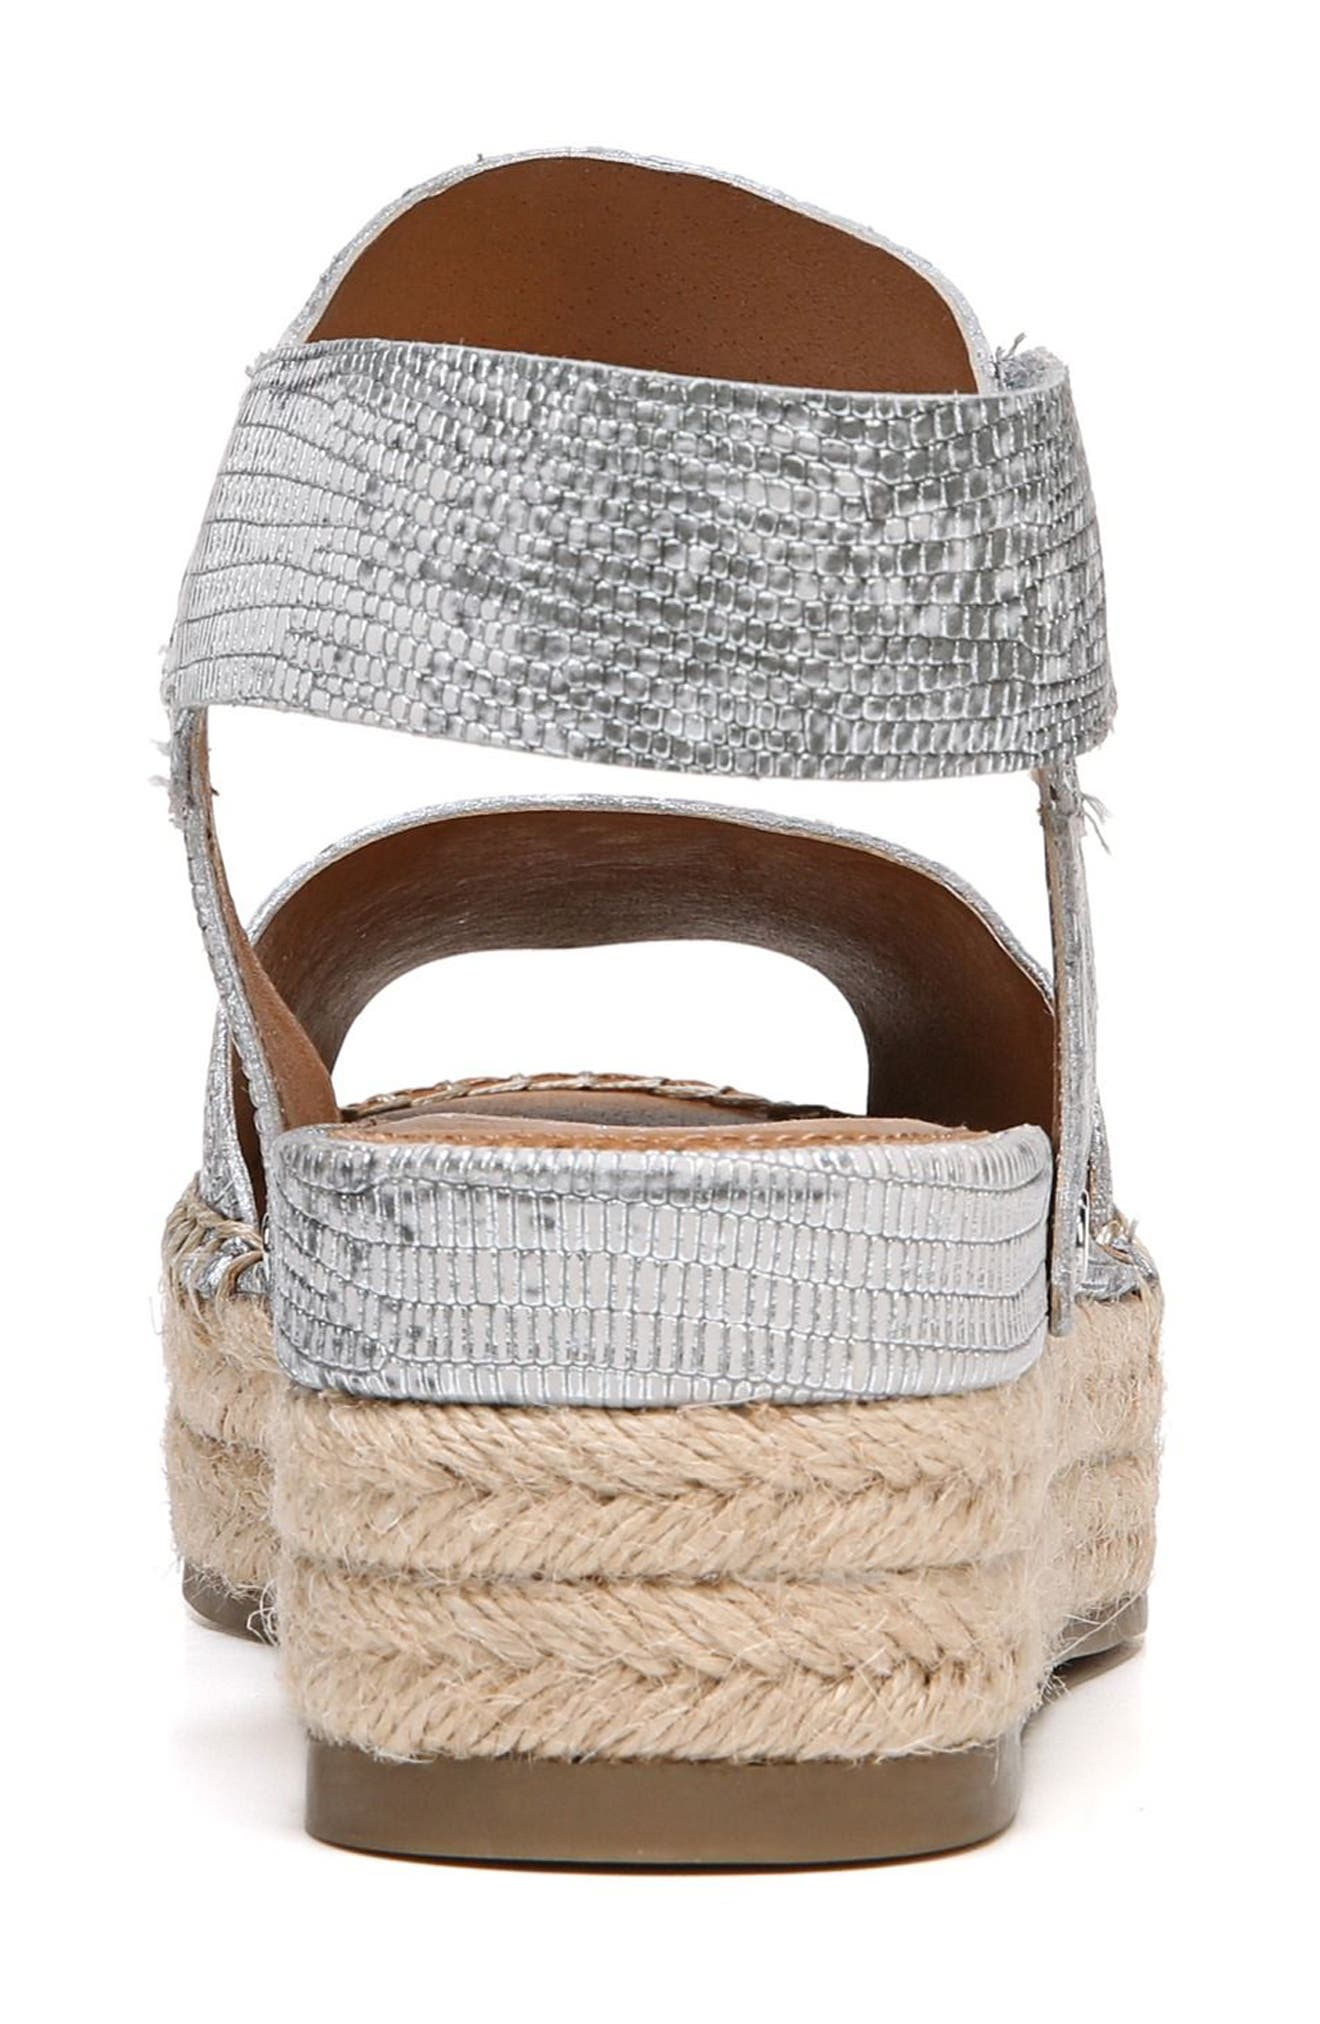 Oak Platform Wedge Espadrille,                             Alternate thumbnail 7, color,                             SILVER PRINTED LEATHER